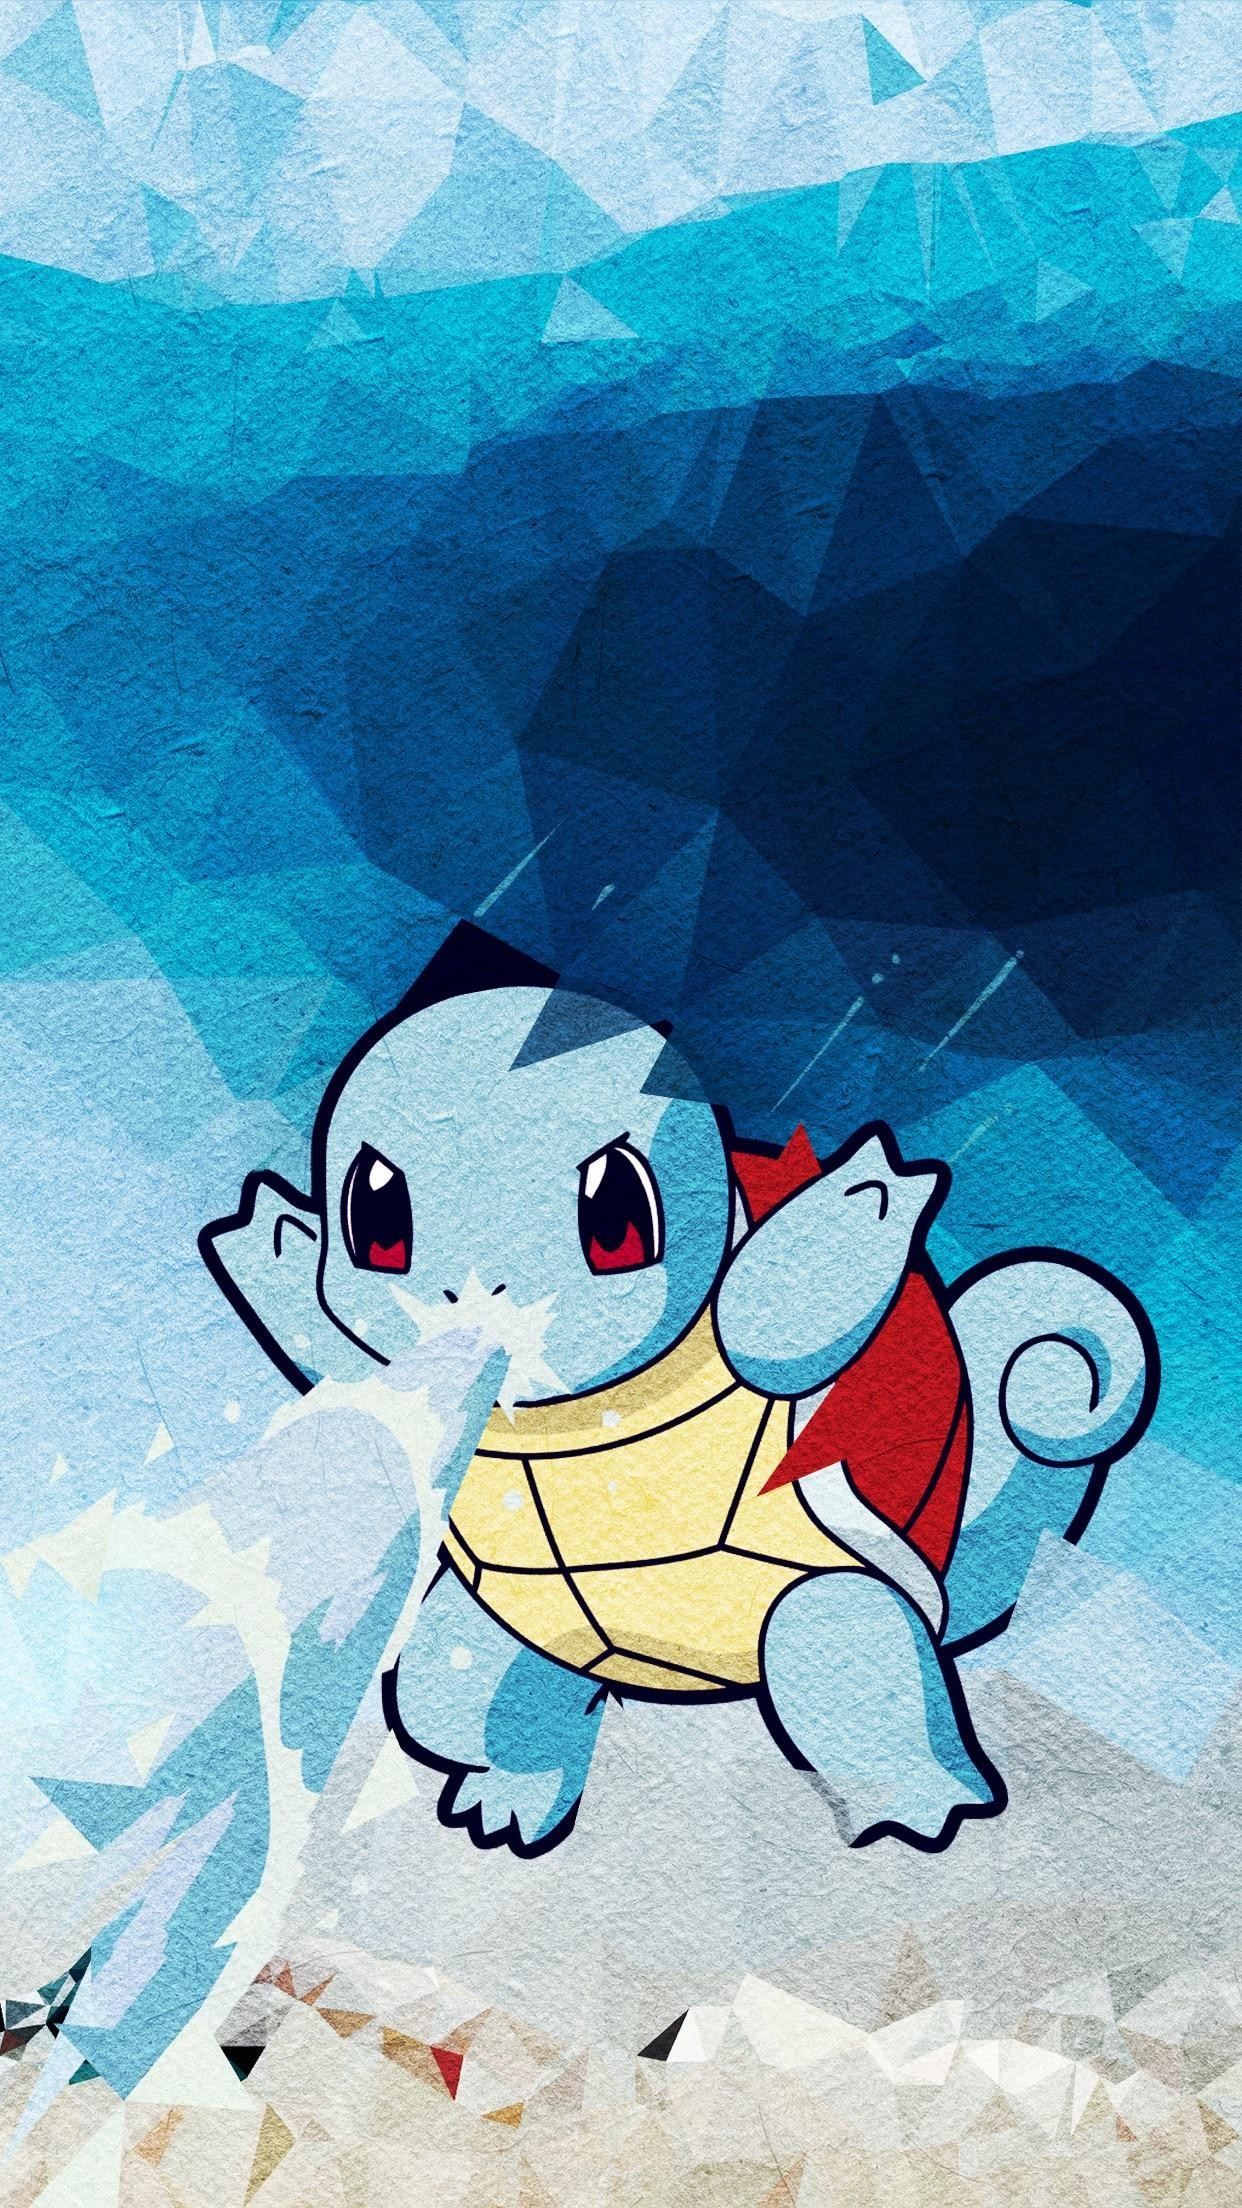 Res: 1242x2208, Great Squirtle wallpaper | iPhone X Wallpapers